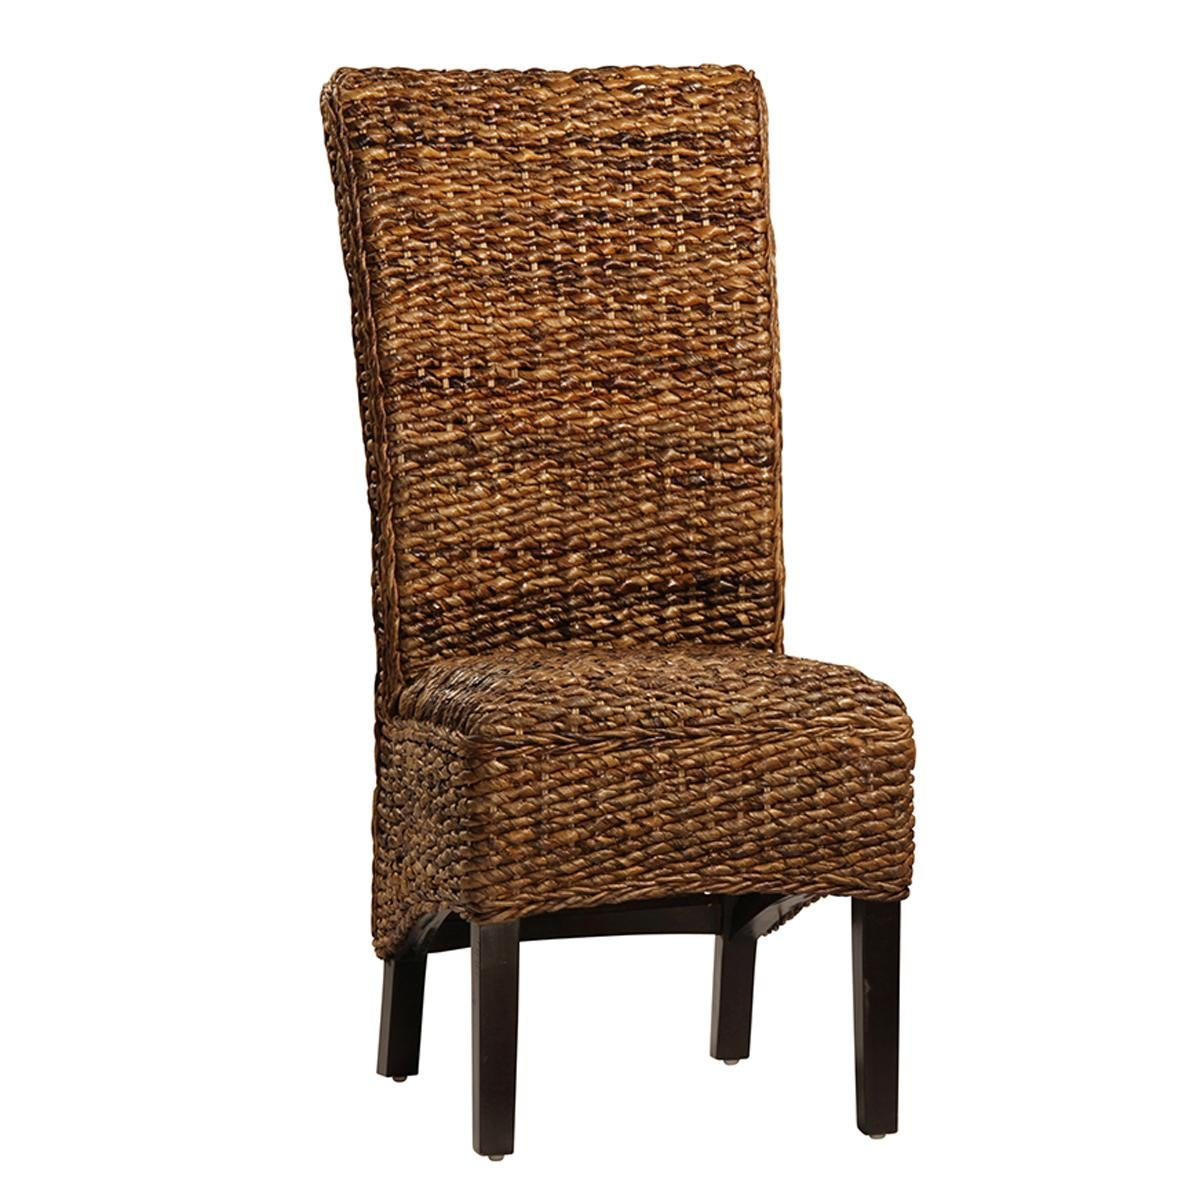 Banana Rocker Chair Dining Chair With Woven Banana Leaf Chairish